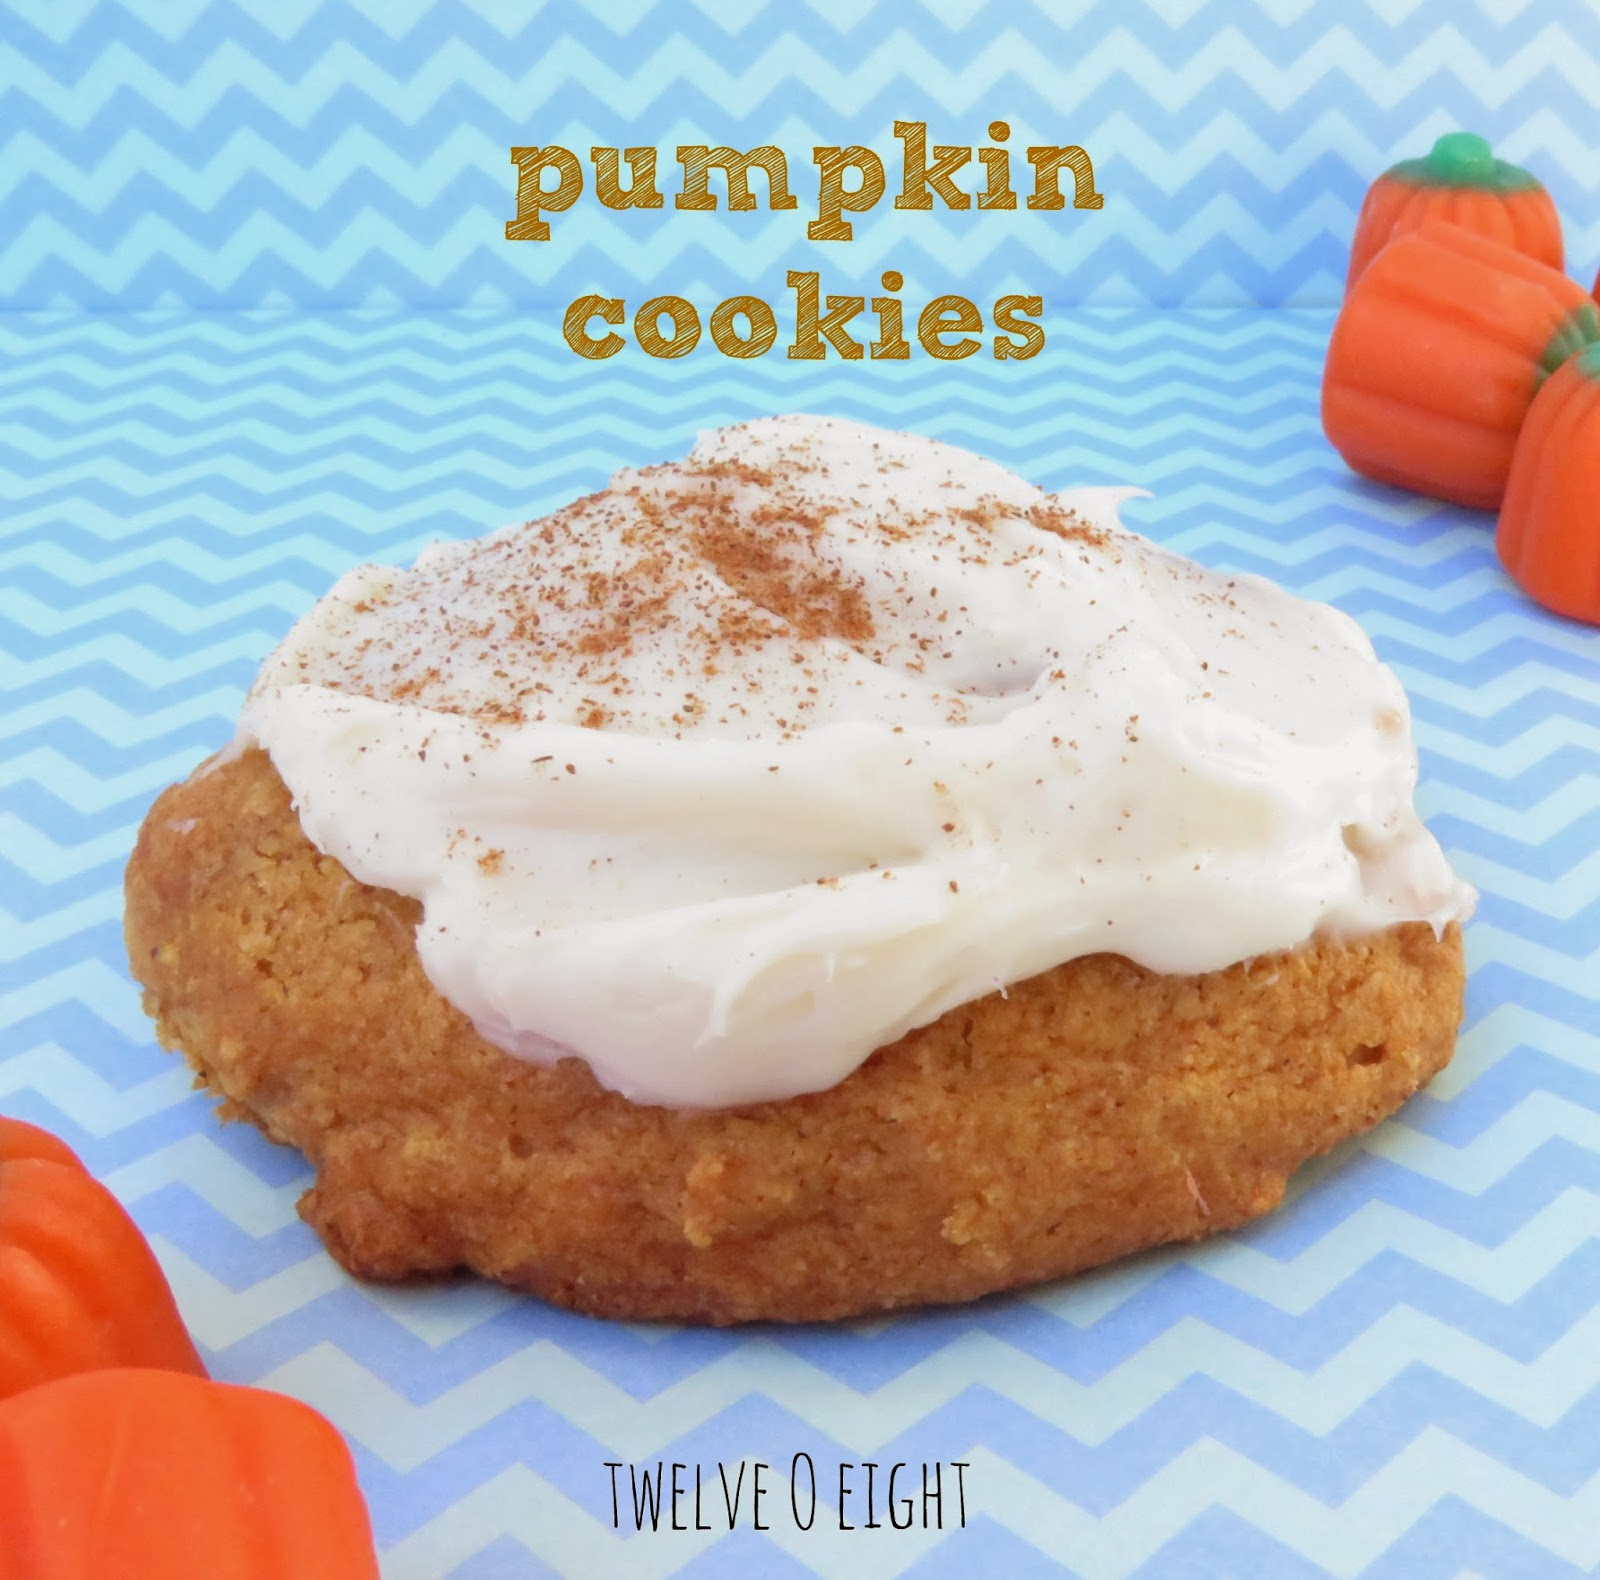 pumpkin cookie, pumpkin dessert, pumpkin recipe, cream cheese frosting, frosted pumpkin cookie, best cookie recipes